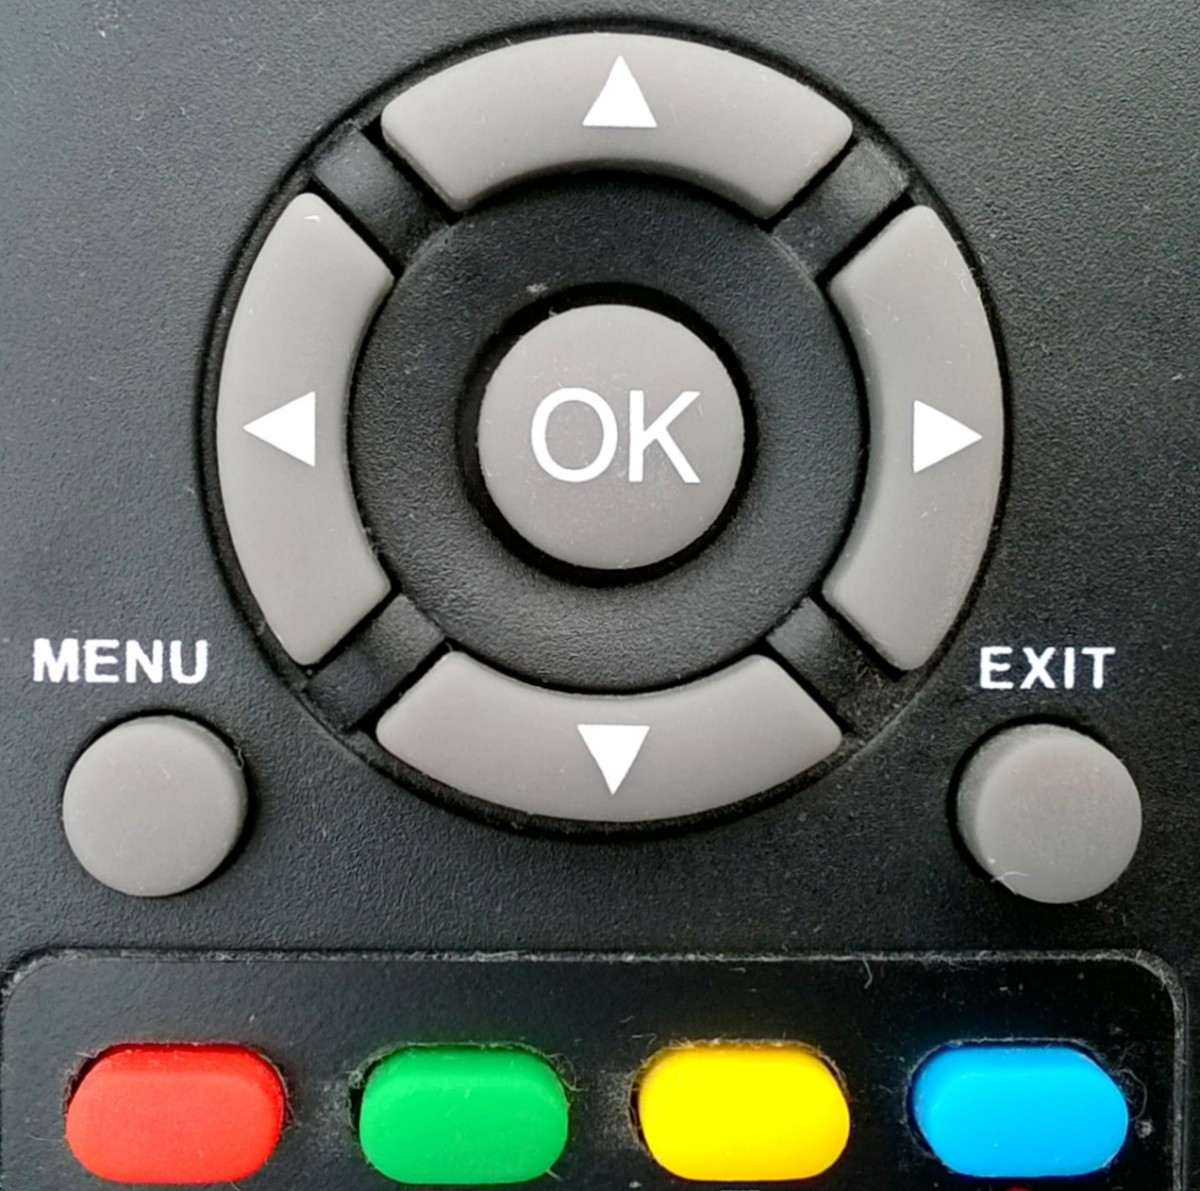 How to Repair a TV Remote Control or Alarm Keypad With Kitchen Foil